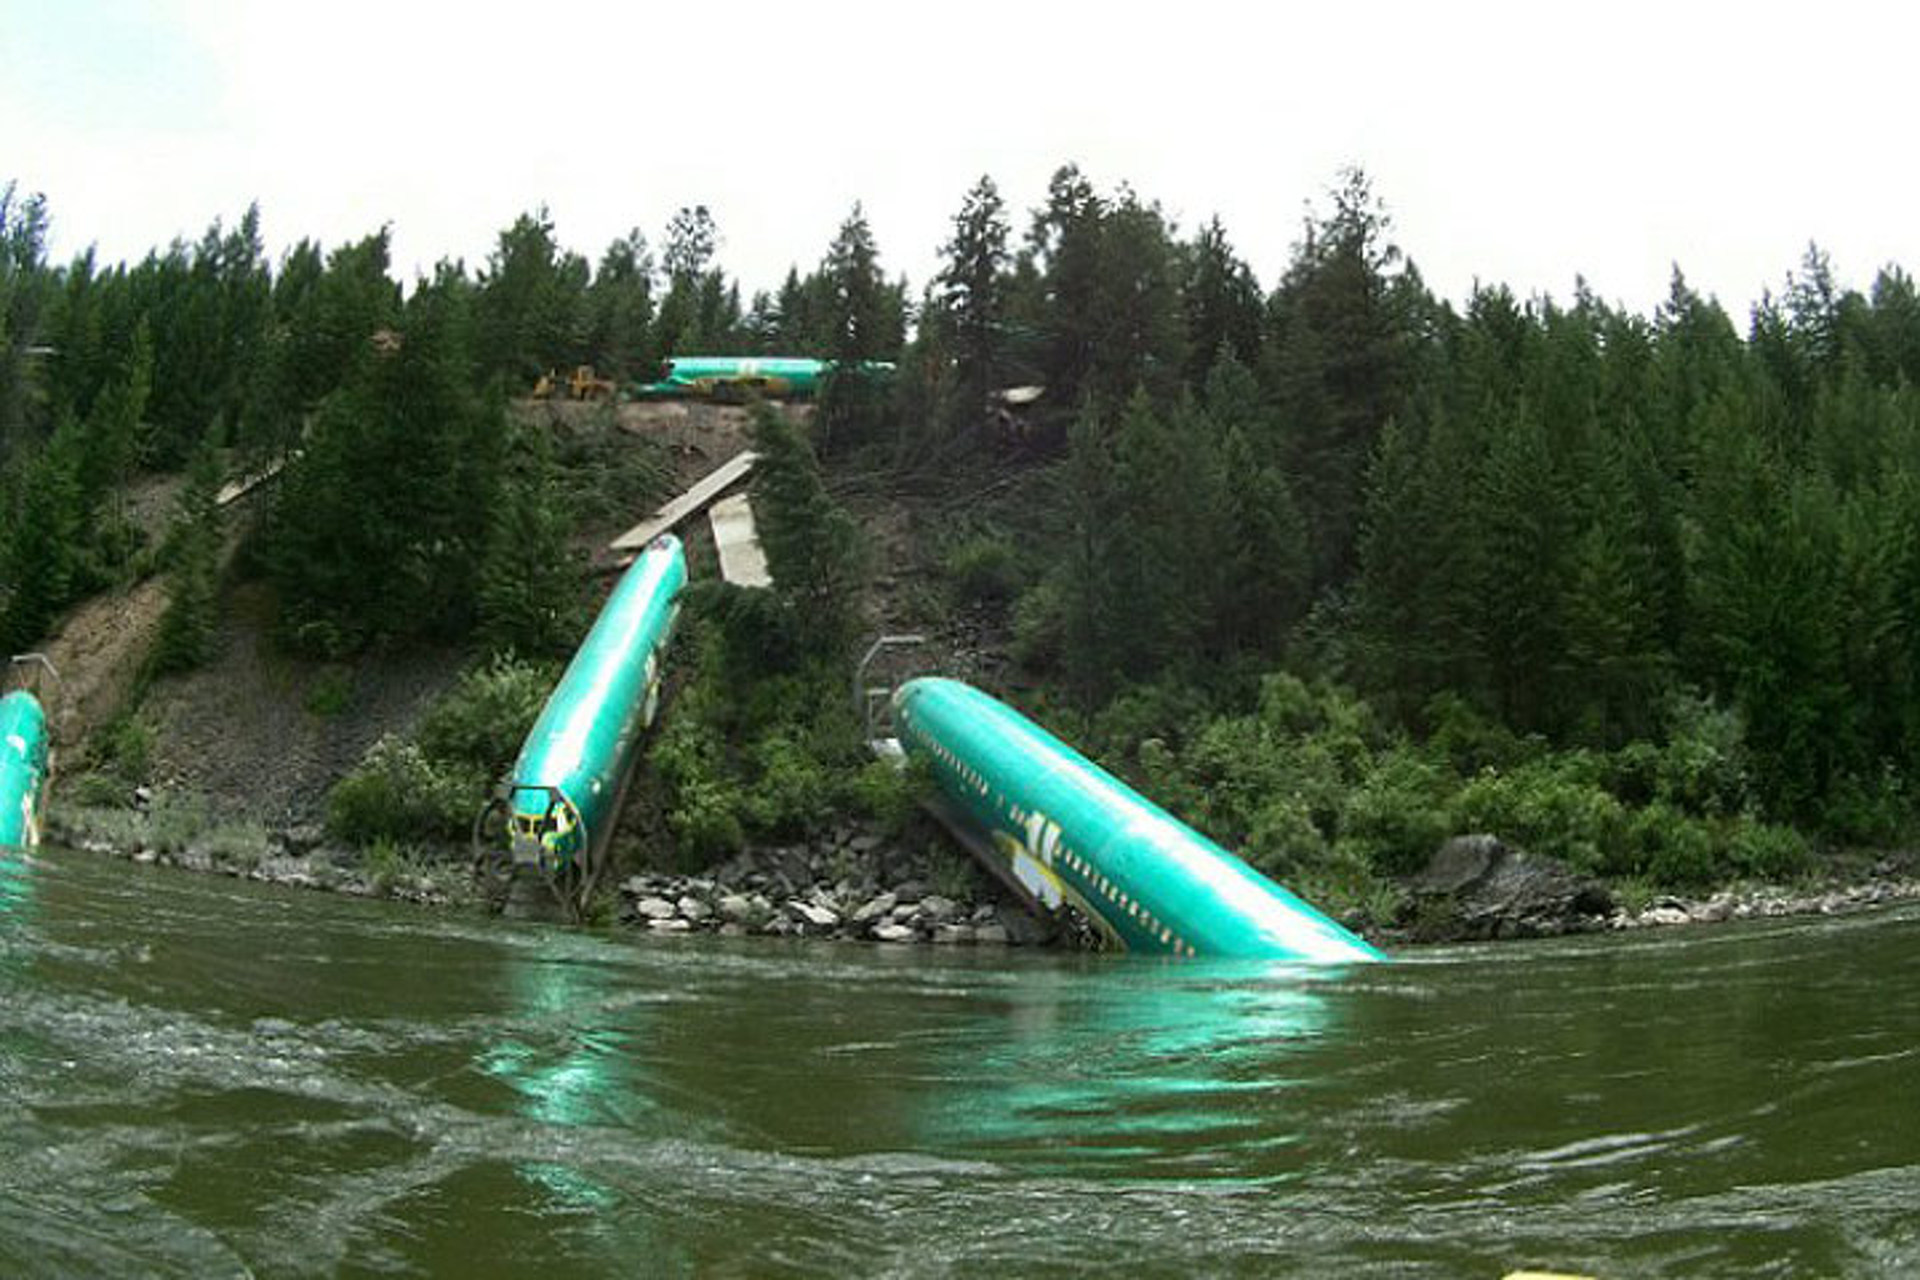 Work Begins to Hoist Three Boeing 737s from the Clark Fork River